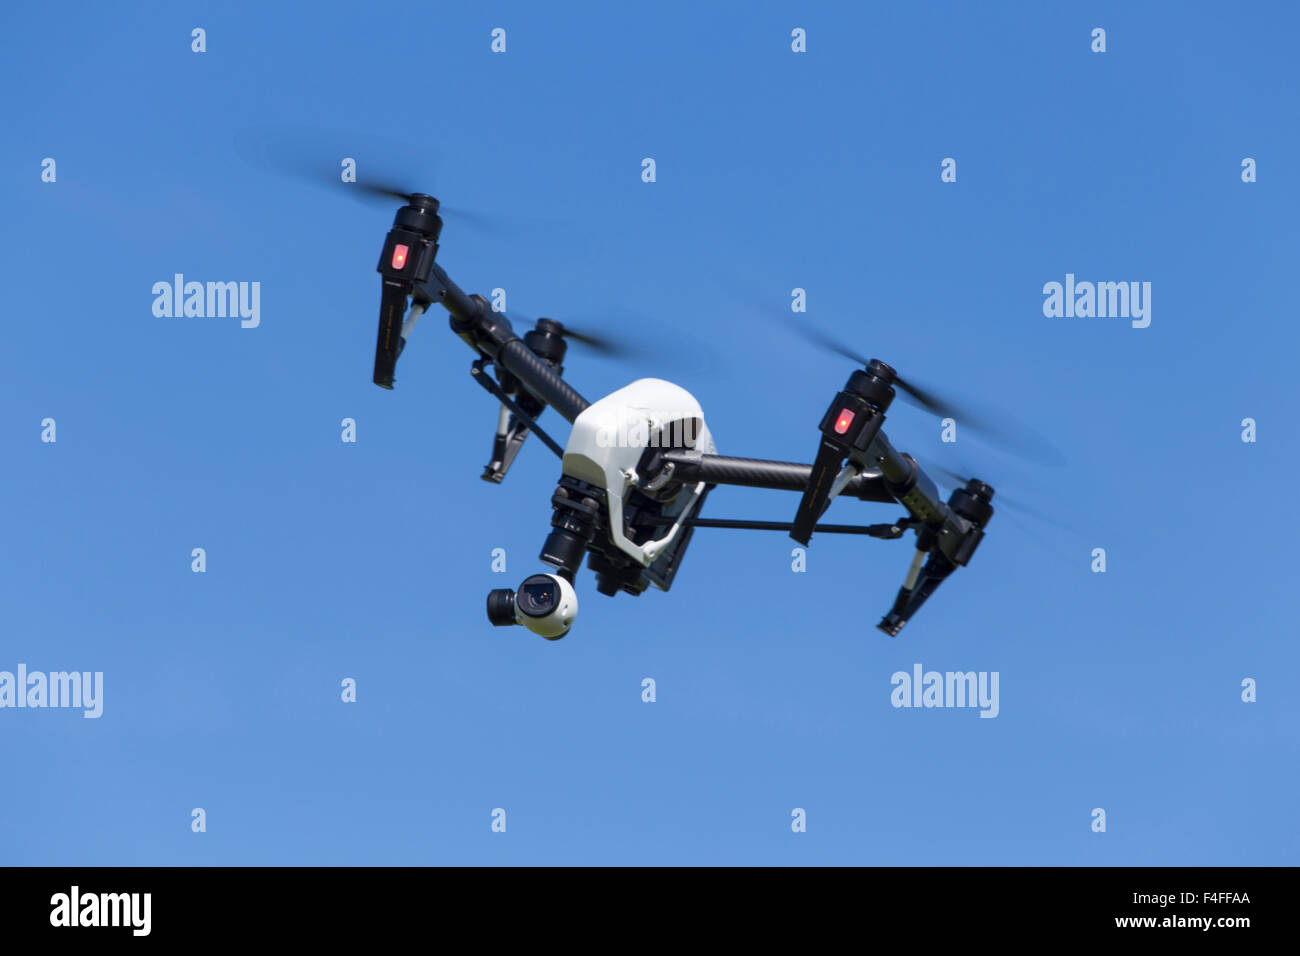 Quadcopter Drone DJI Inspire with camera for aerial photography and photos. - Stock Image